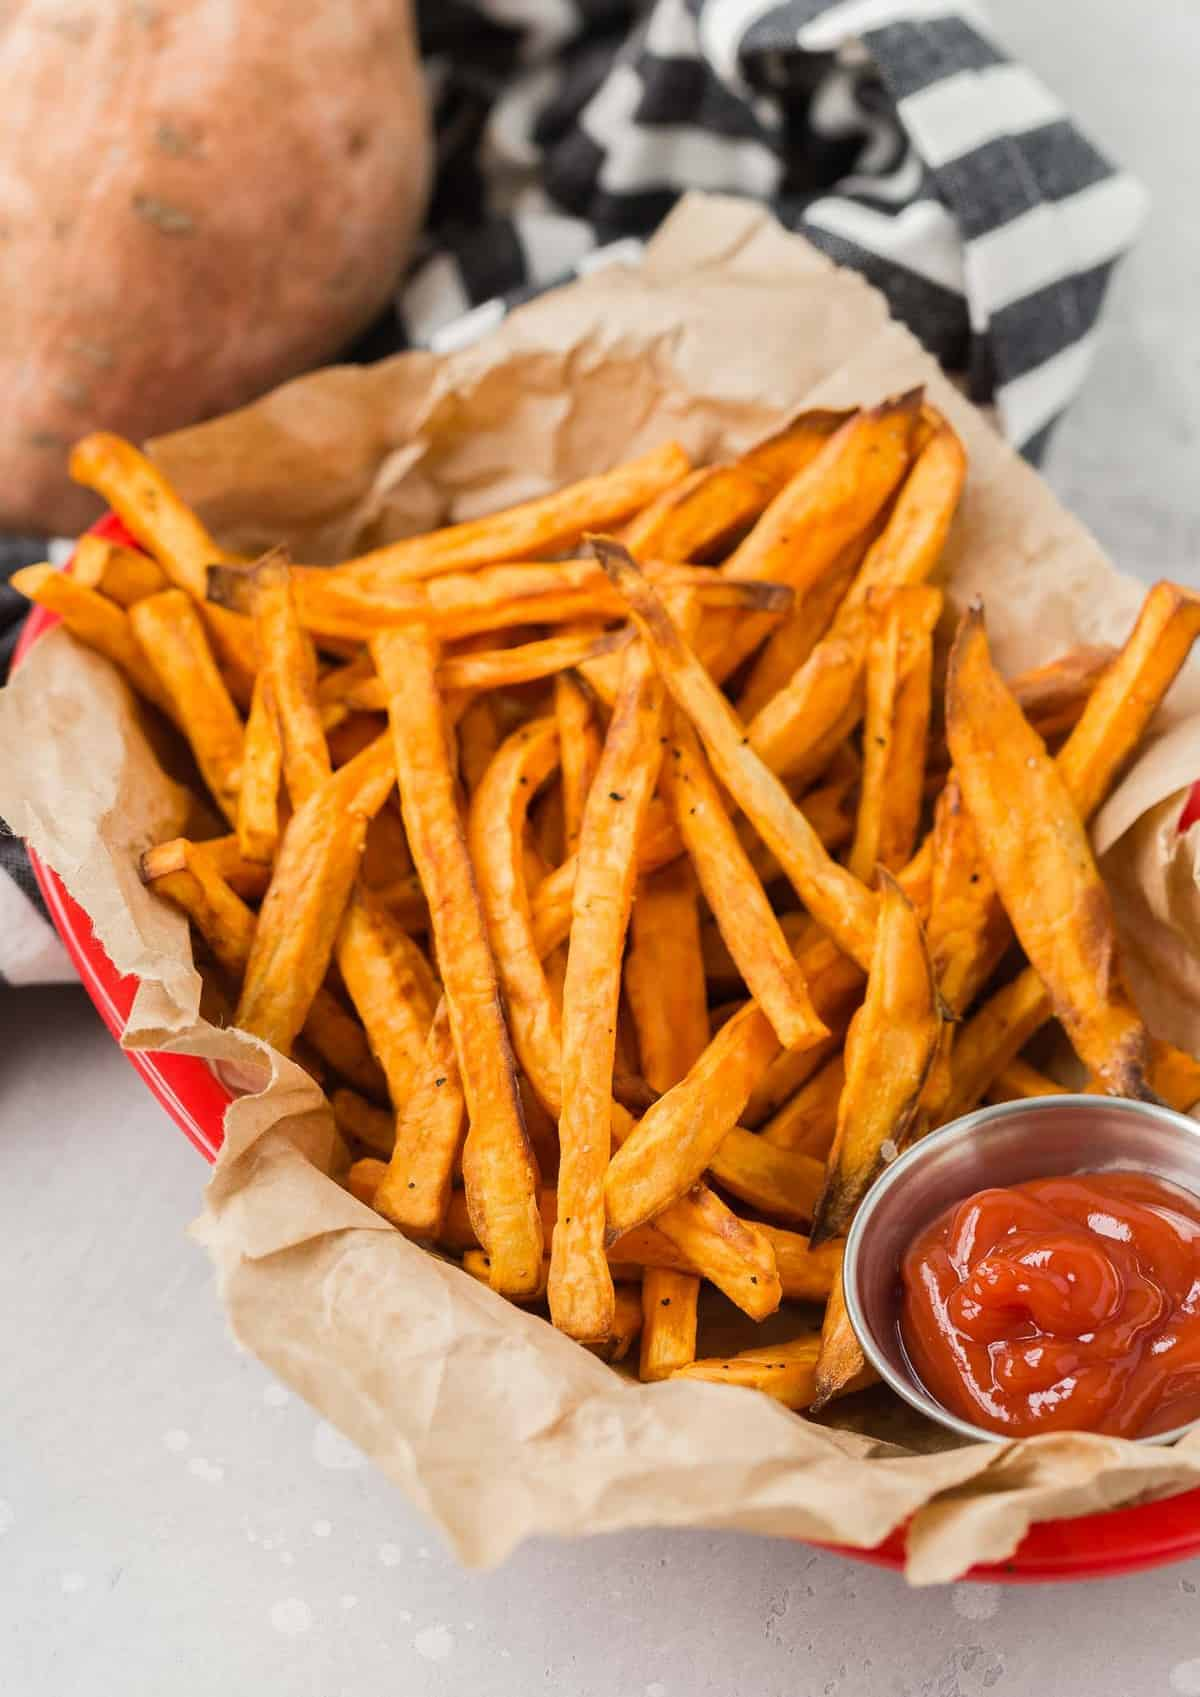 Overhead view of sweet potato fries in a brown paper lined basket with a small cup of ketchup.